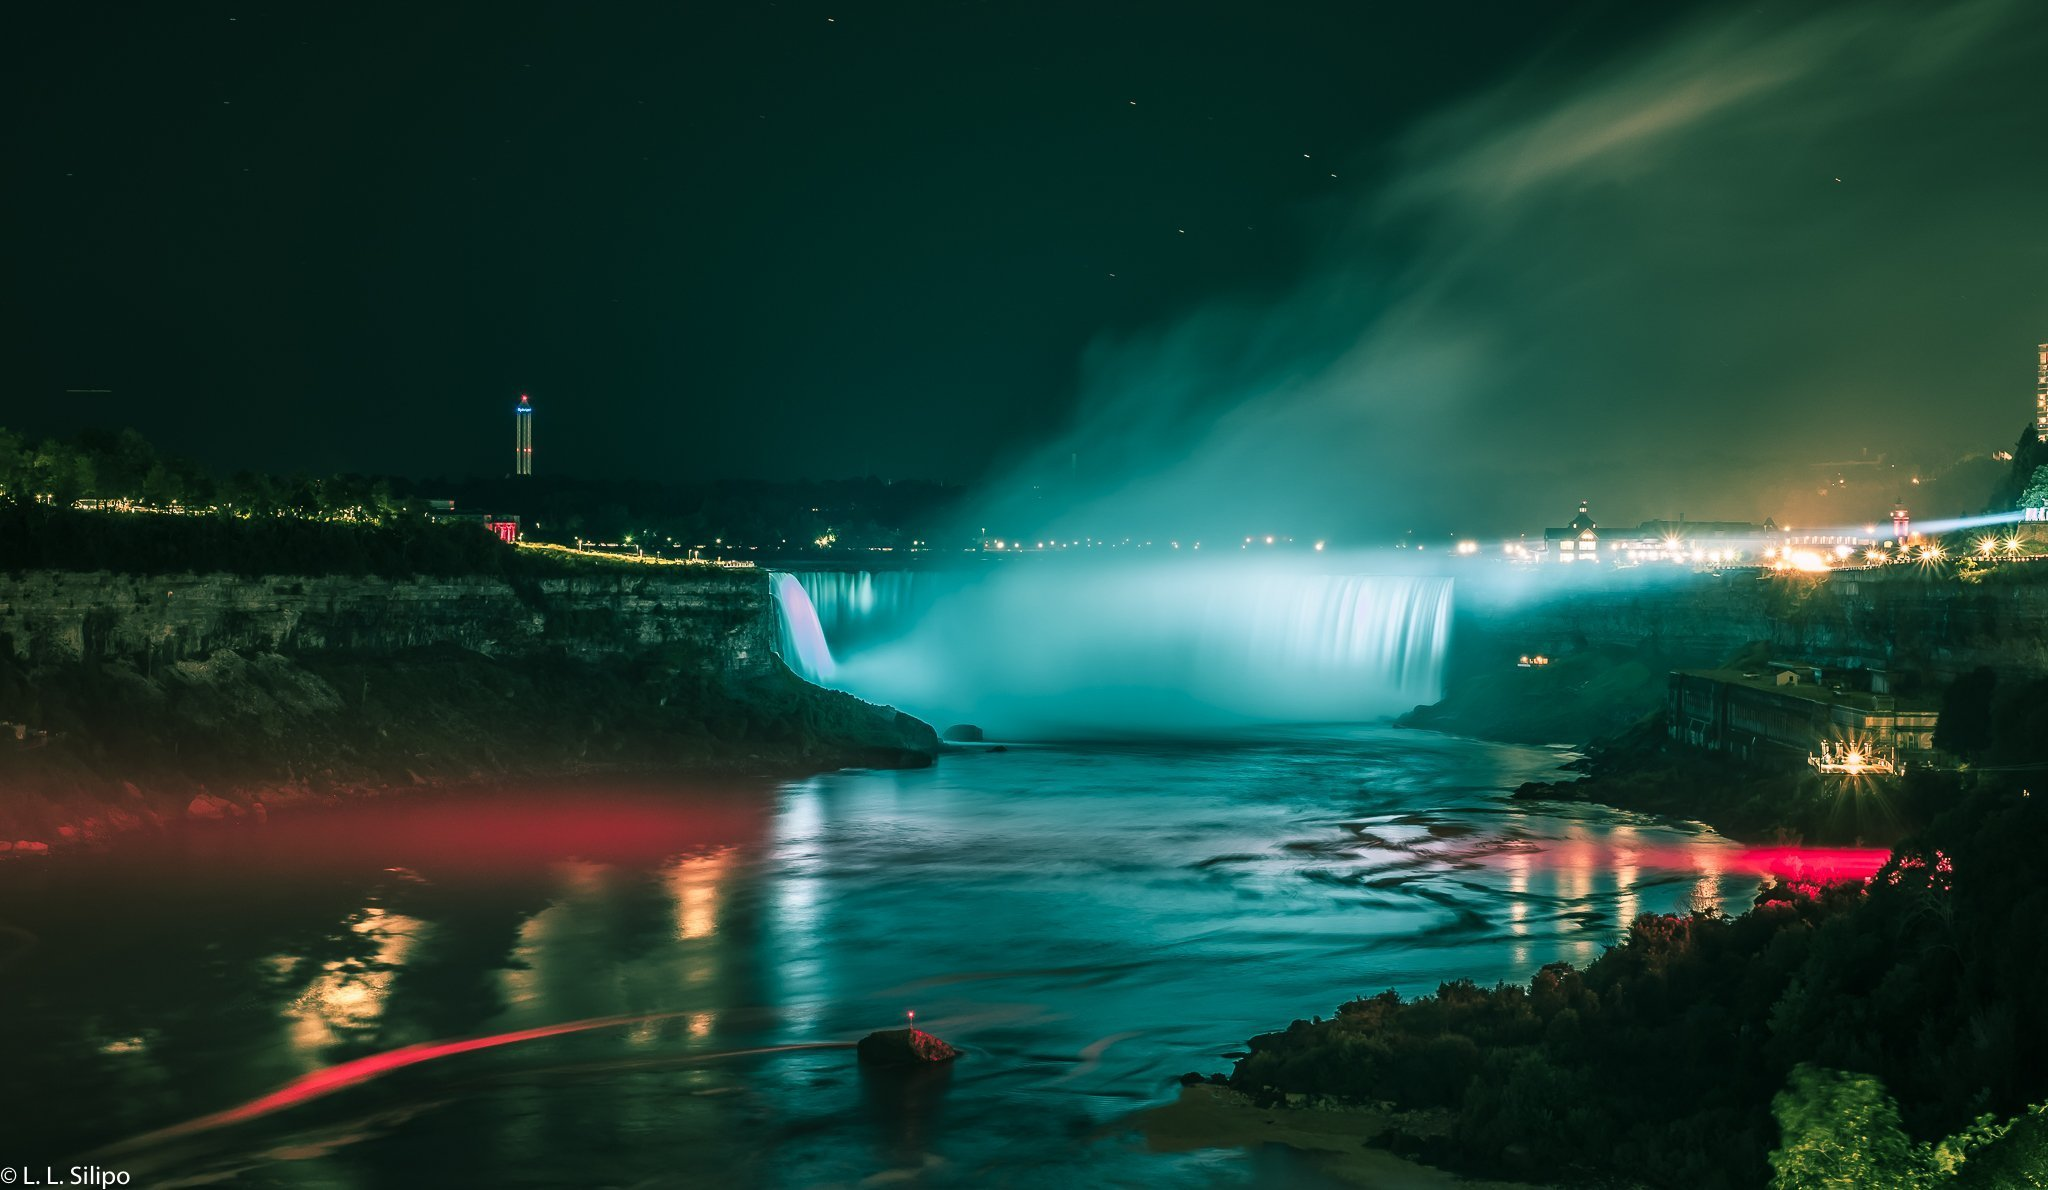 aerial, american, beautiful, beauty, boat, canada, day, fall, horseshoe, landscape, majestic, natural, nature, niagara, panorama, river, rocks, sky, spring, tourism, view, water, waterfall, white